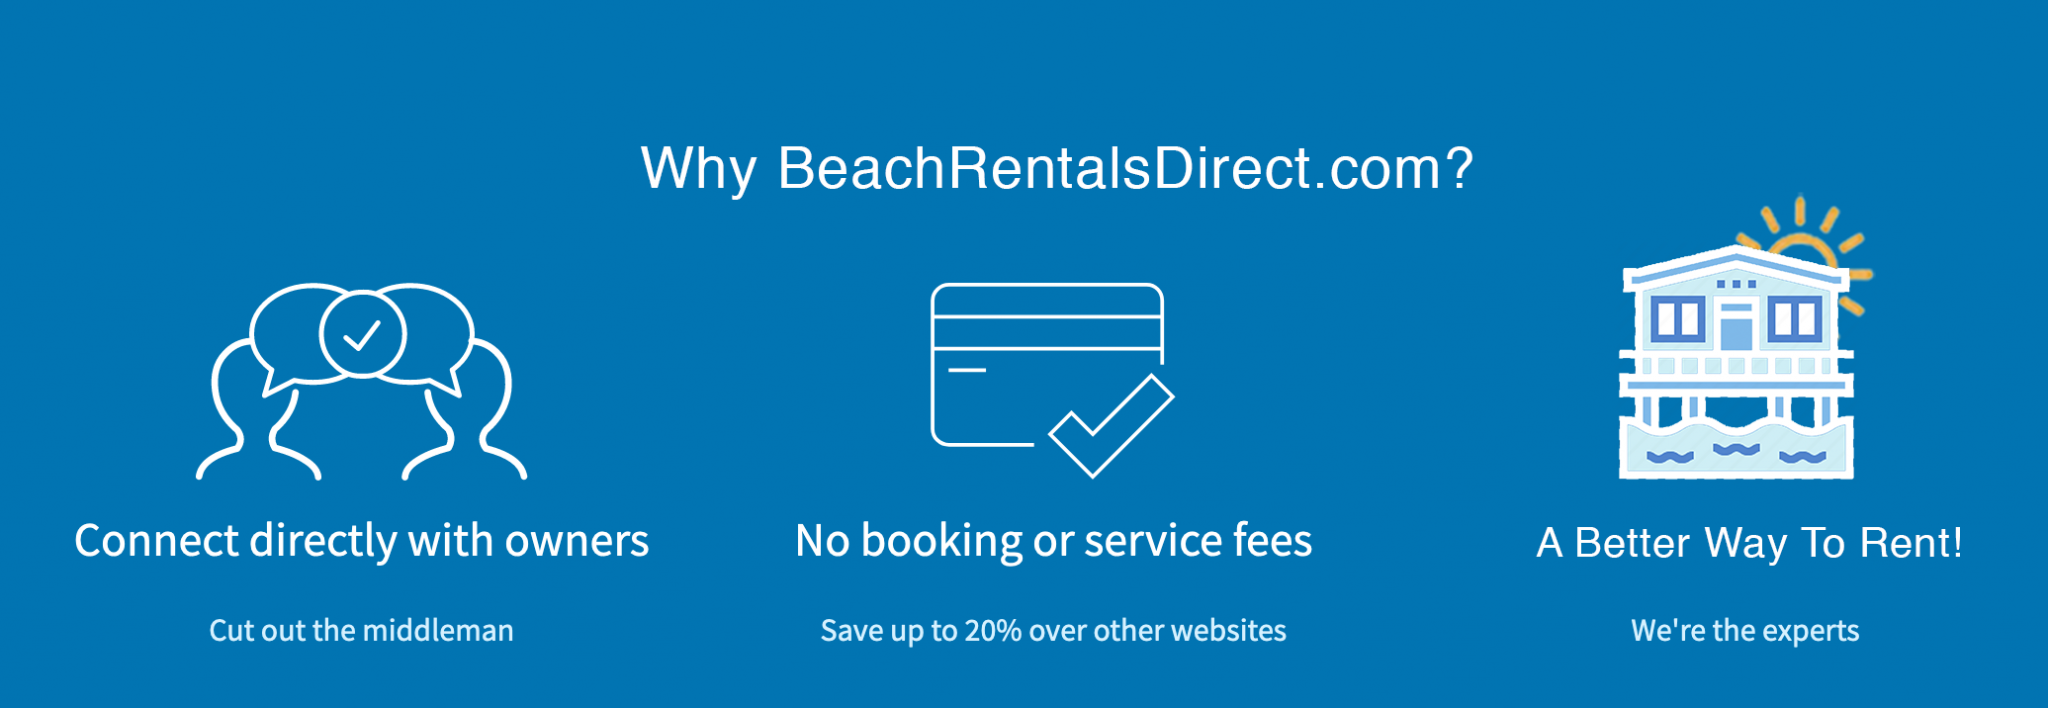 BeachRentalsDirect.com … A Better Way to Rent!